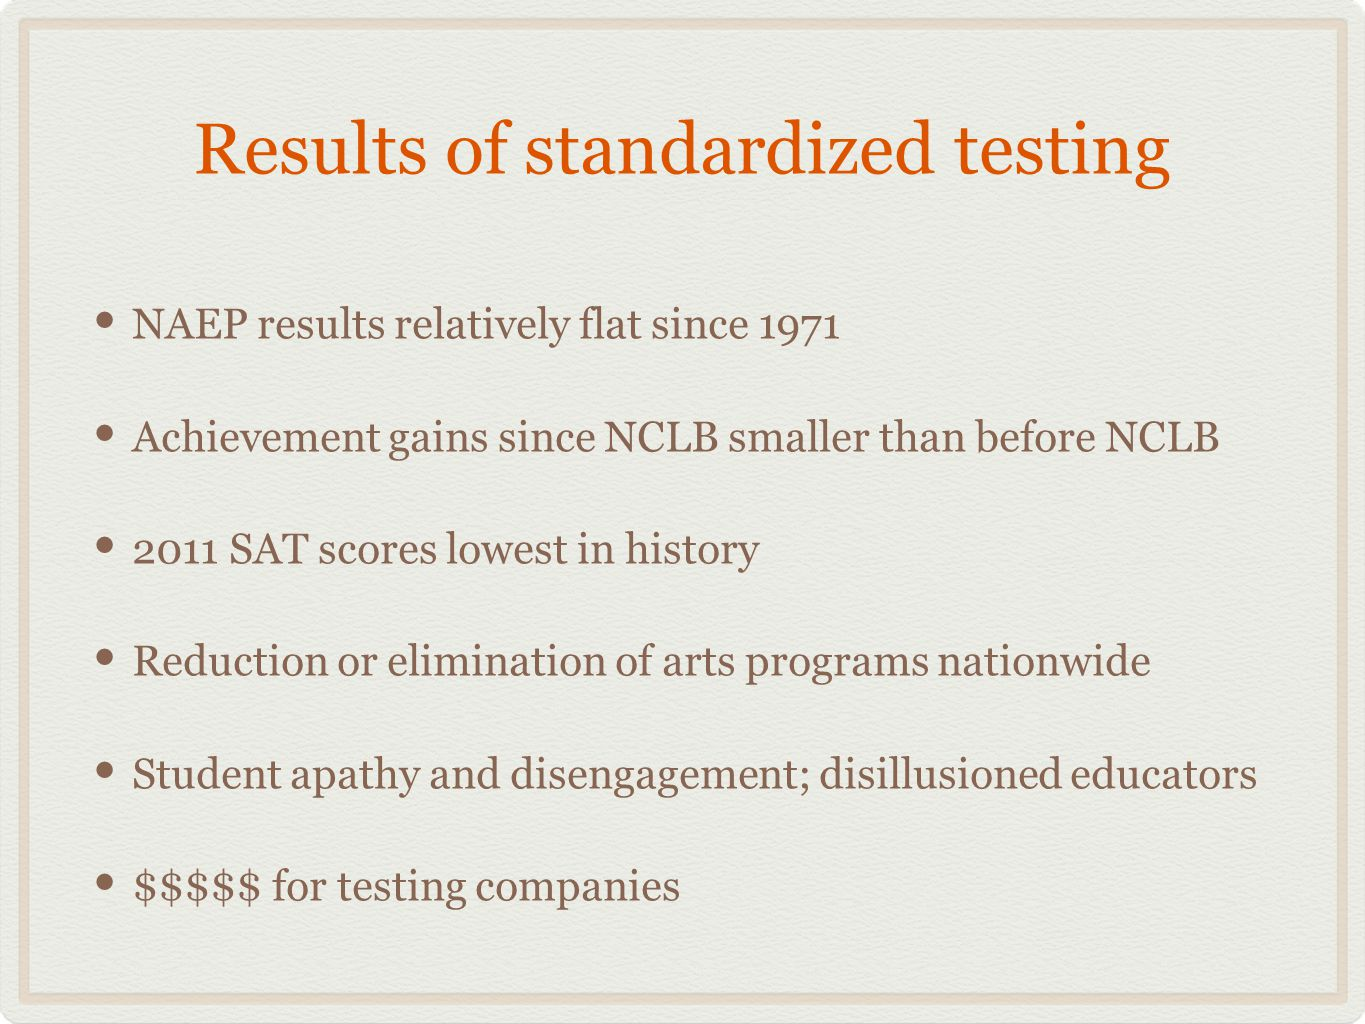 Results of standardized testing NAEP results relatively flat since 1971 Achievement gains since NCLB smaller than before NCLB 2011 SAT scores lowest in history Reduction or elimination of arts programs nationwide Student apathy and disengagement; disillusioned educators $$$$$ for testing companies